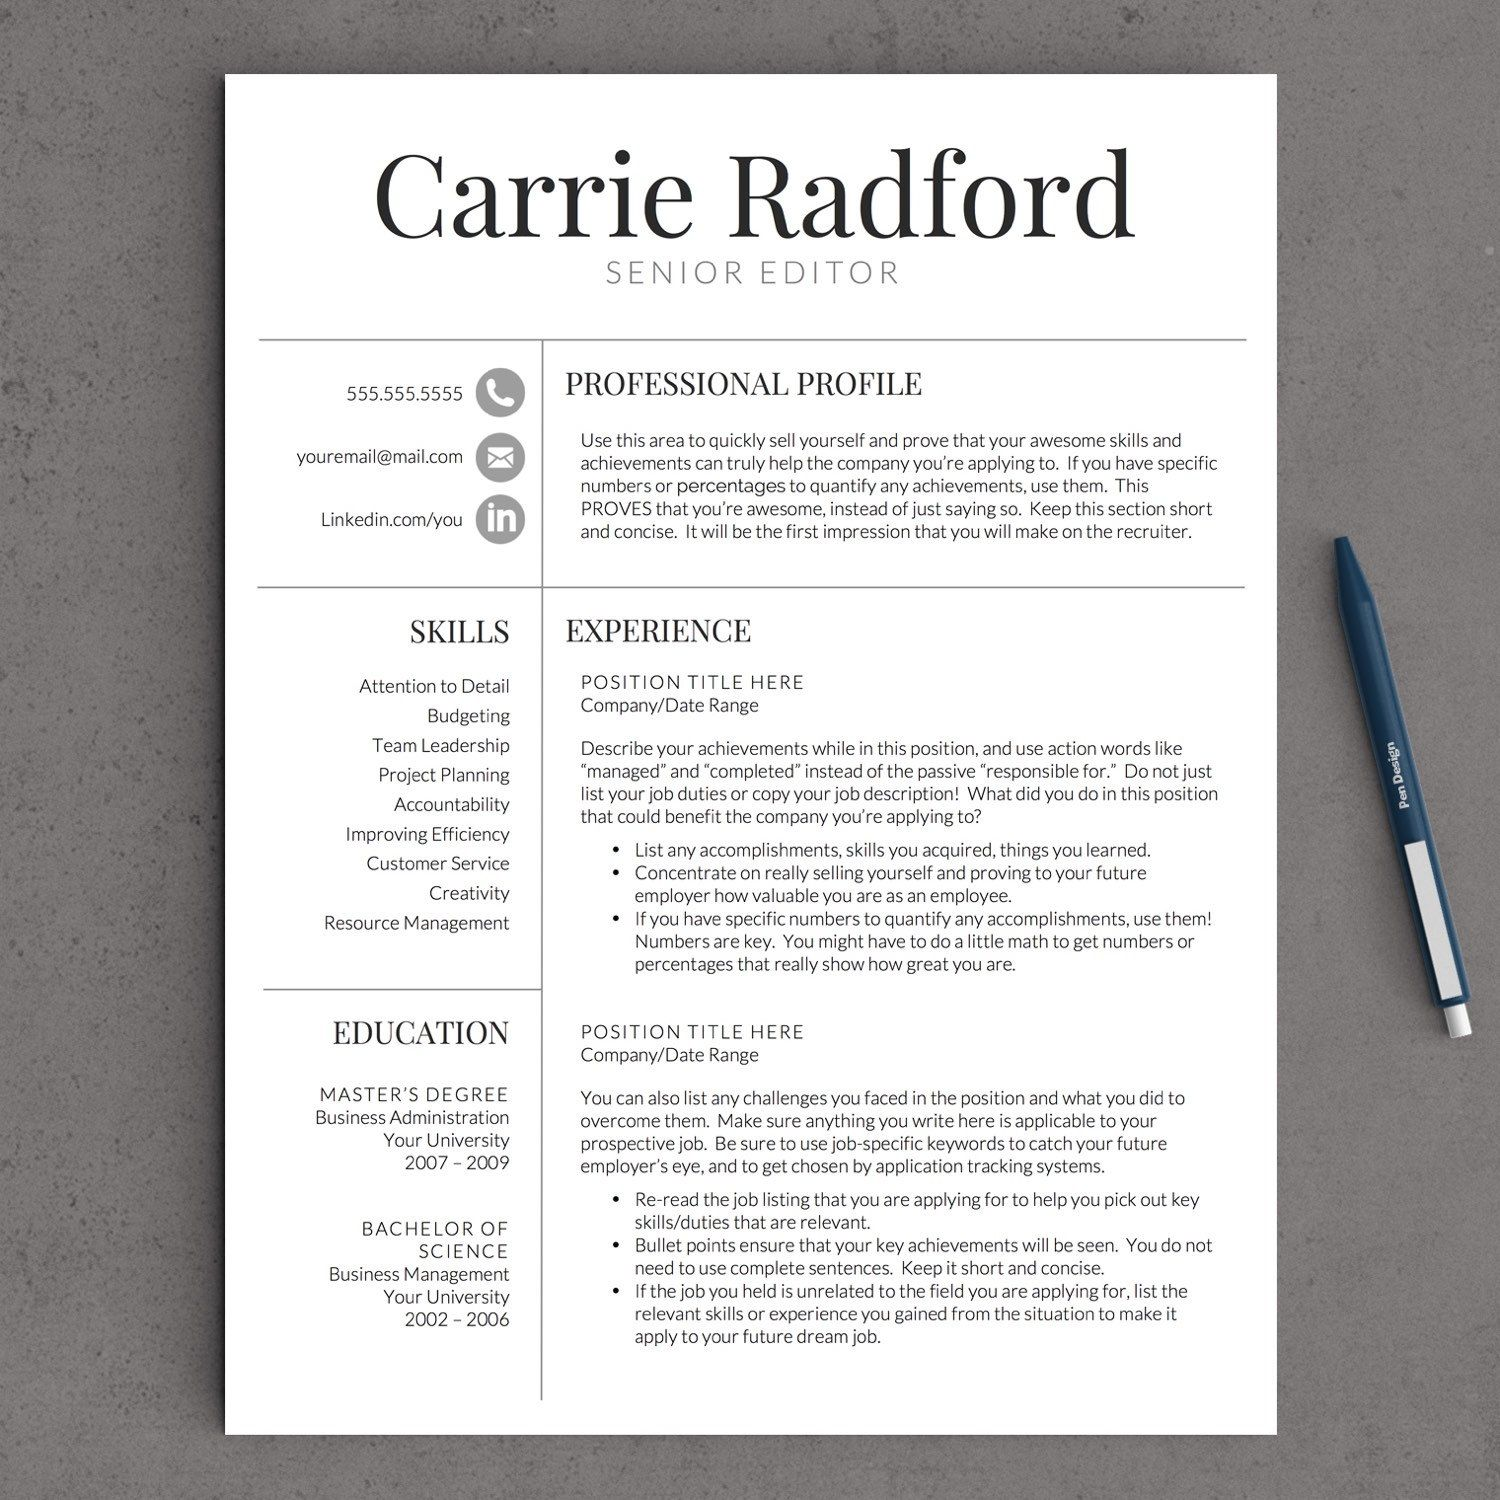 Good Template For Resume Cv Template Examples Writing A Cv Curriculum Vitae  Templates, 7 Free Resume Templates Primer, 7 Free Resume Templates Primer,